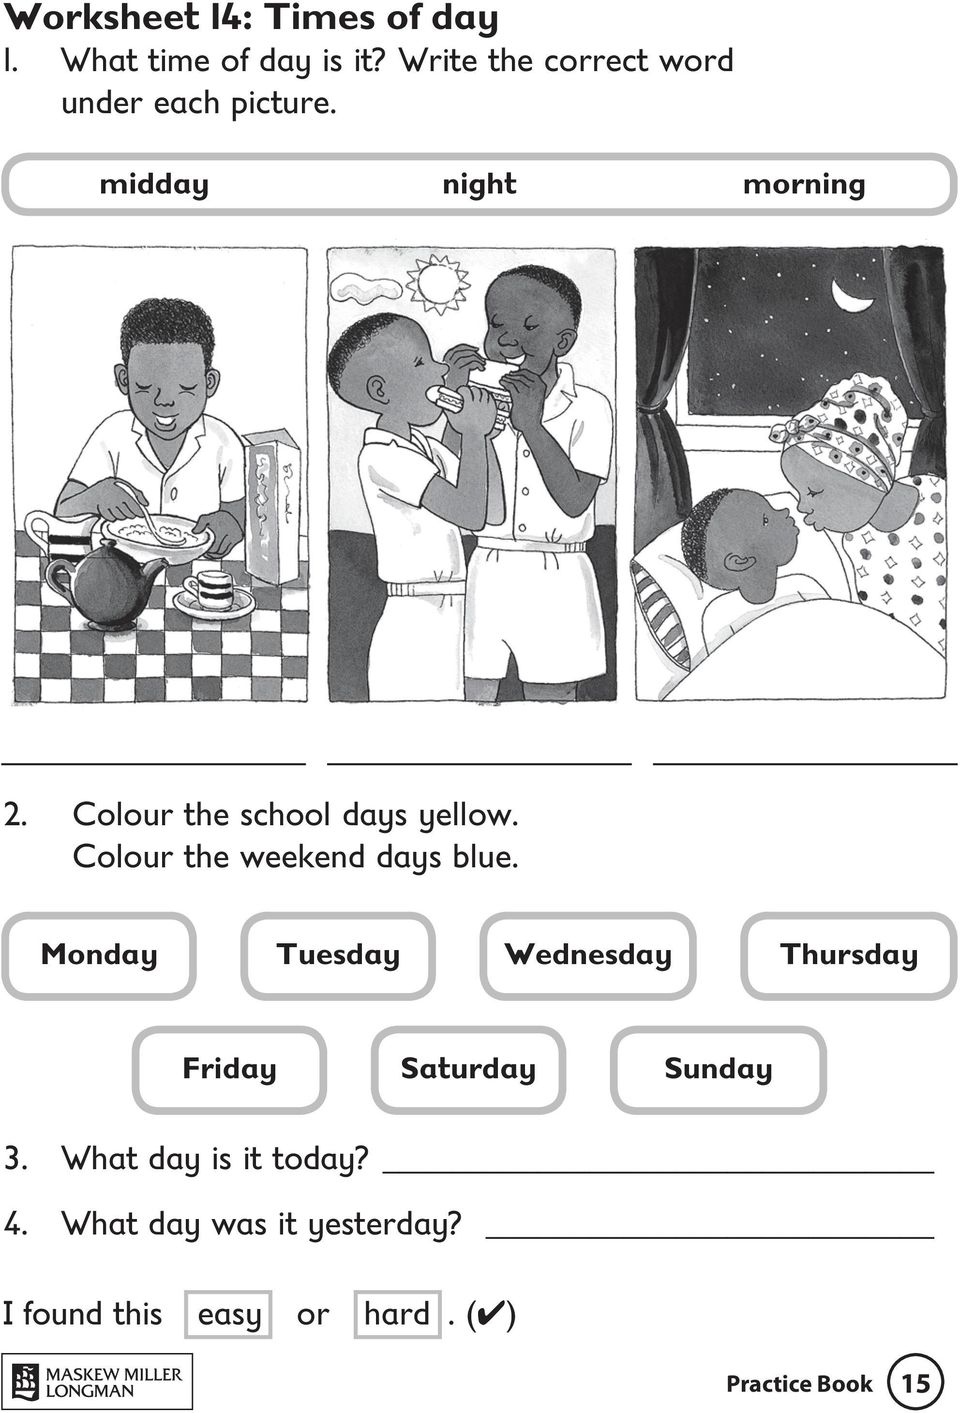 Colour the school days yellow. Colour the weekend days blue.